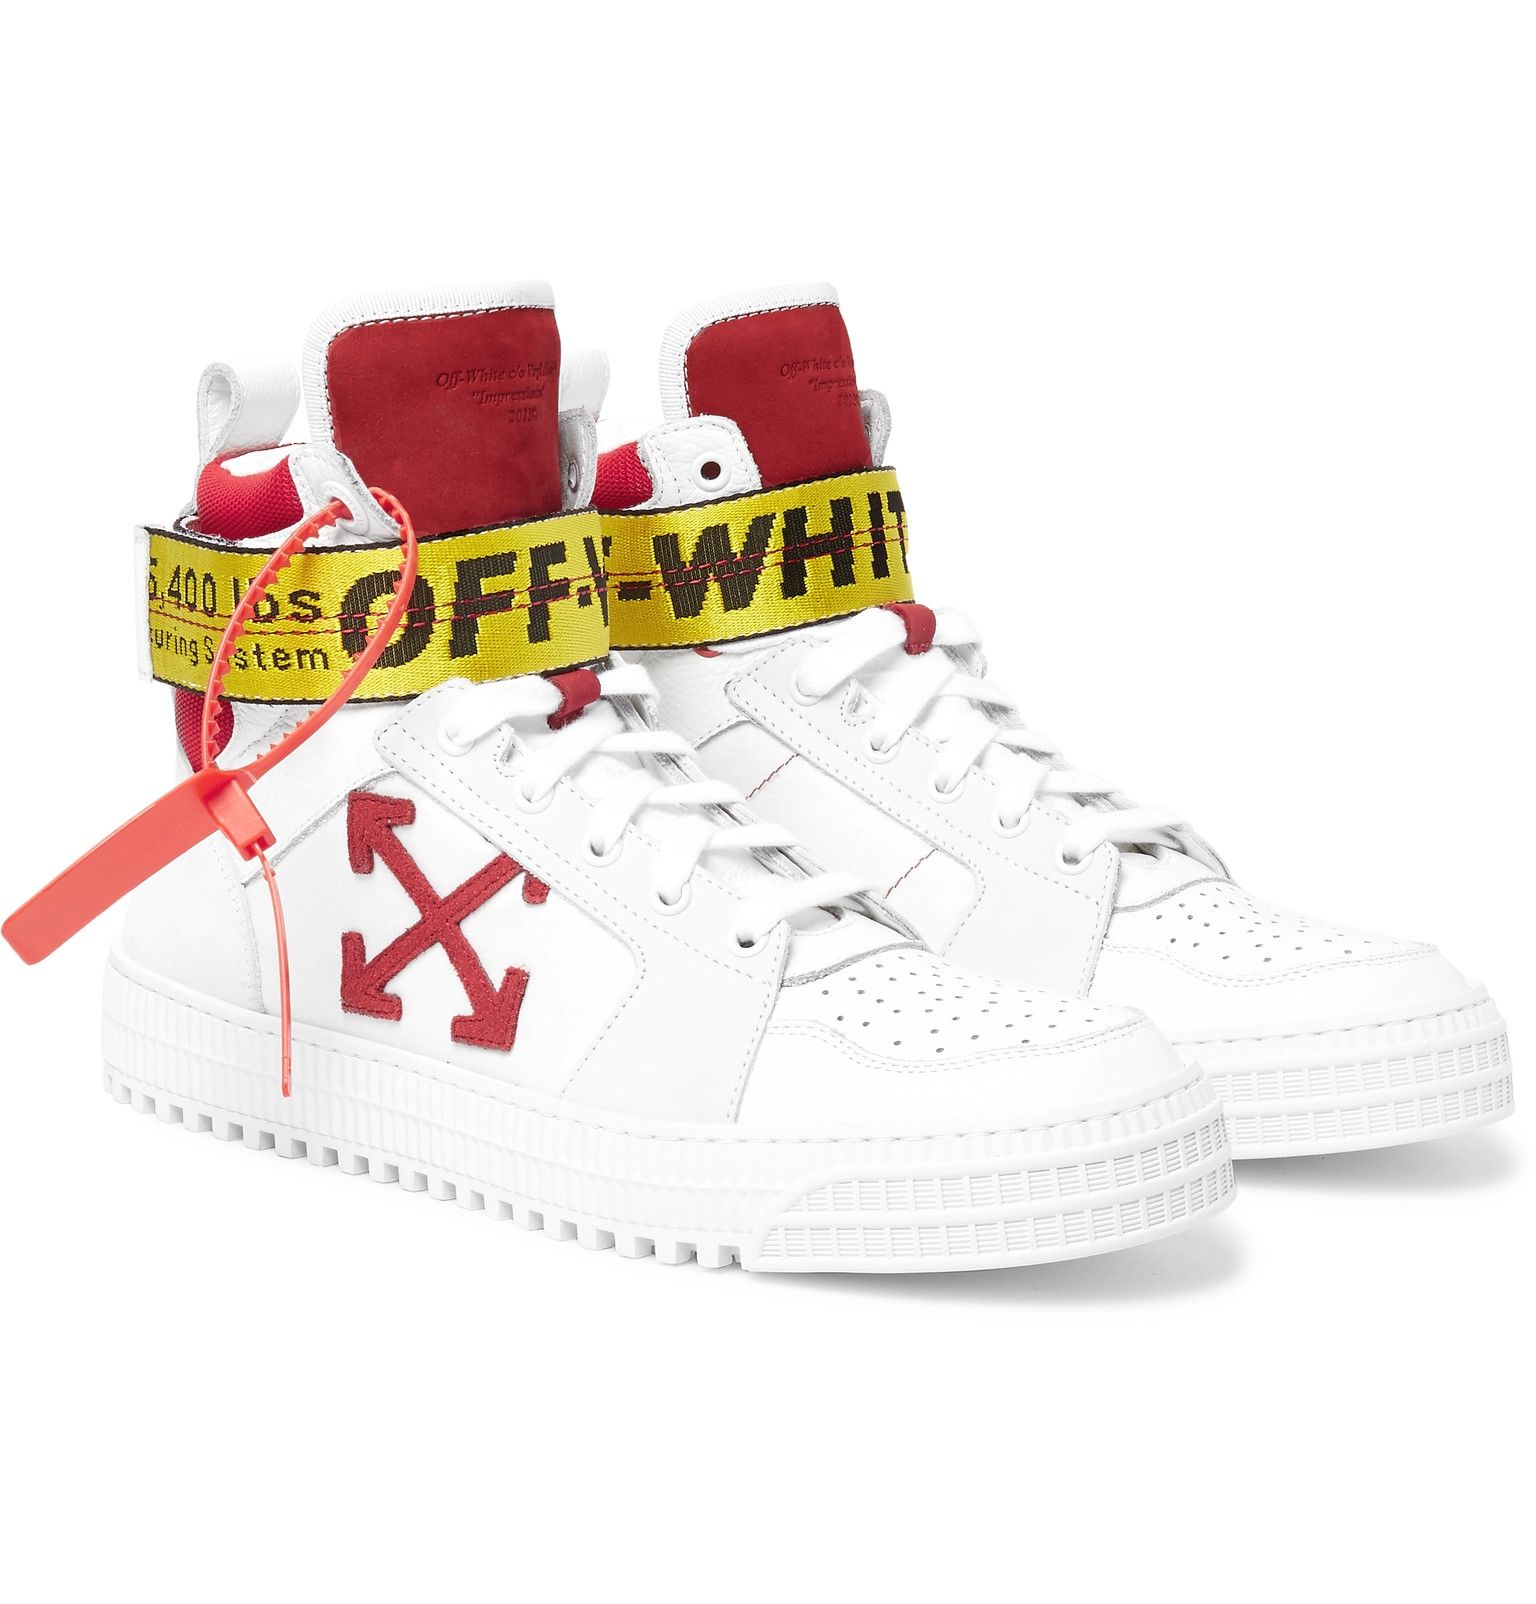 Nike x Off White Air Force 1 - Vancouver Streetwear